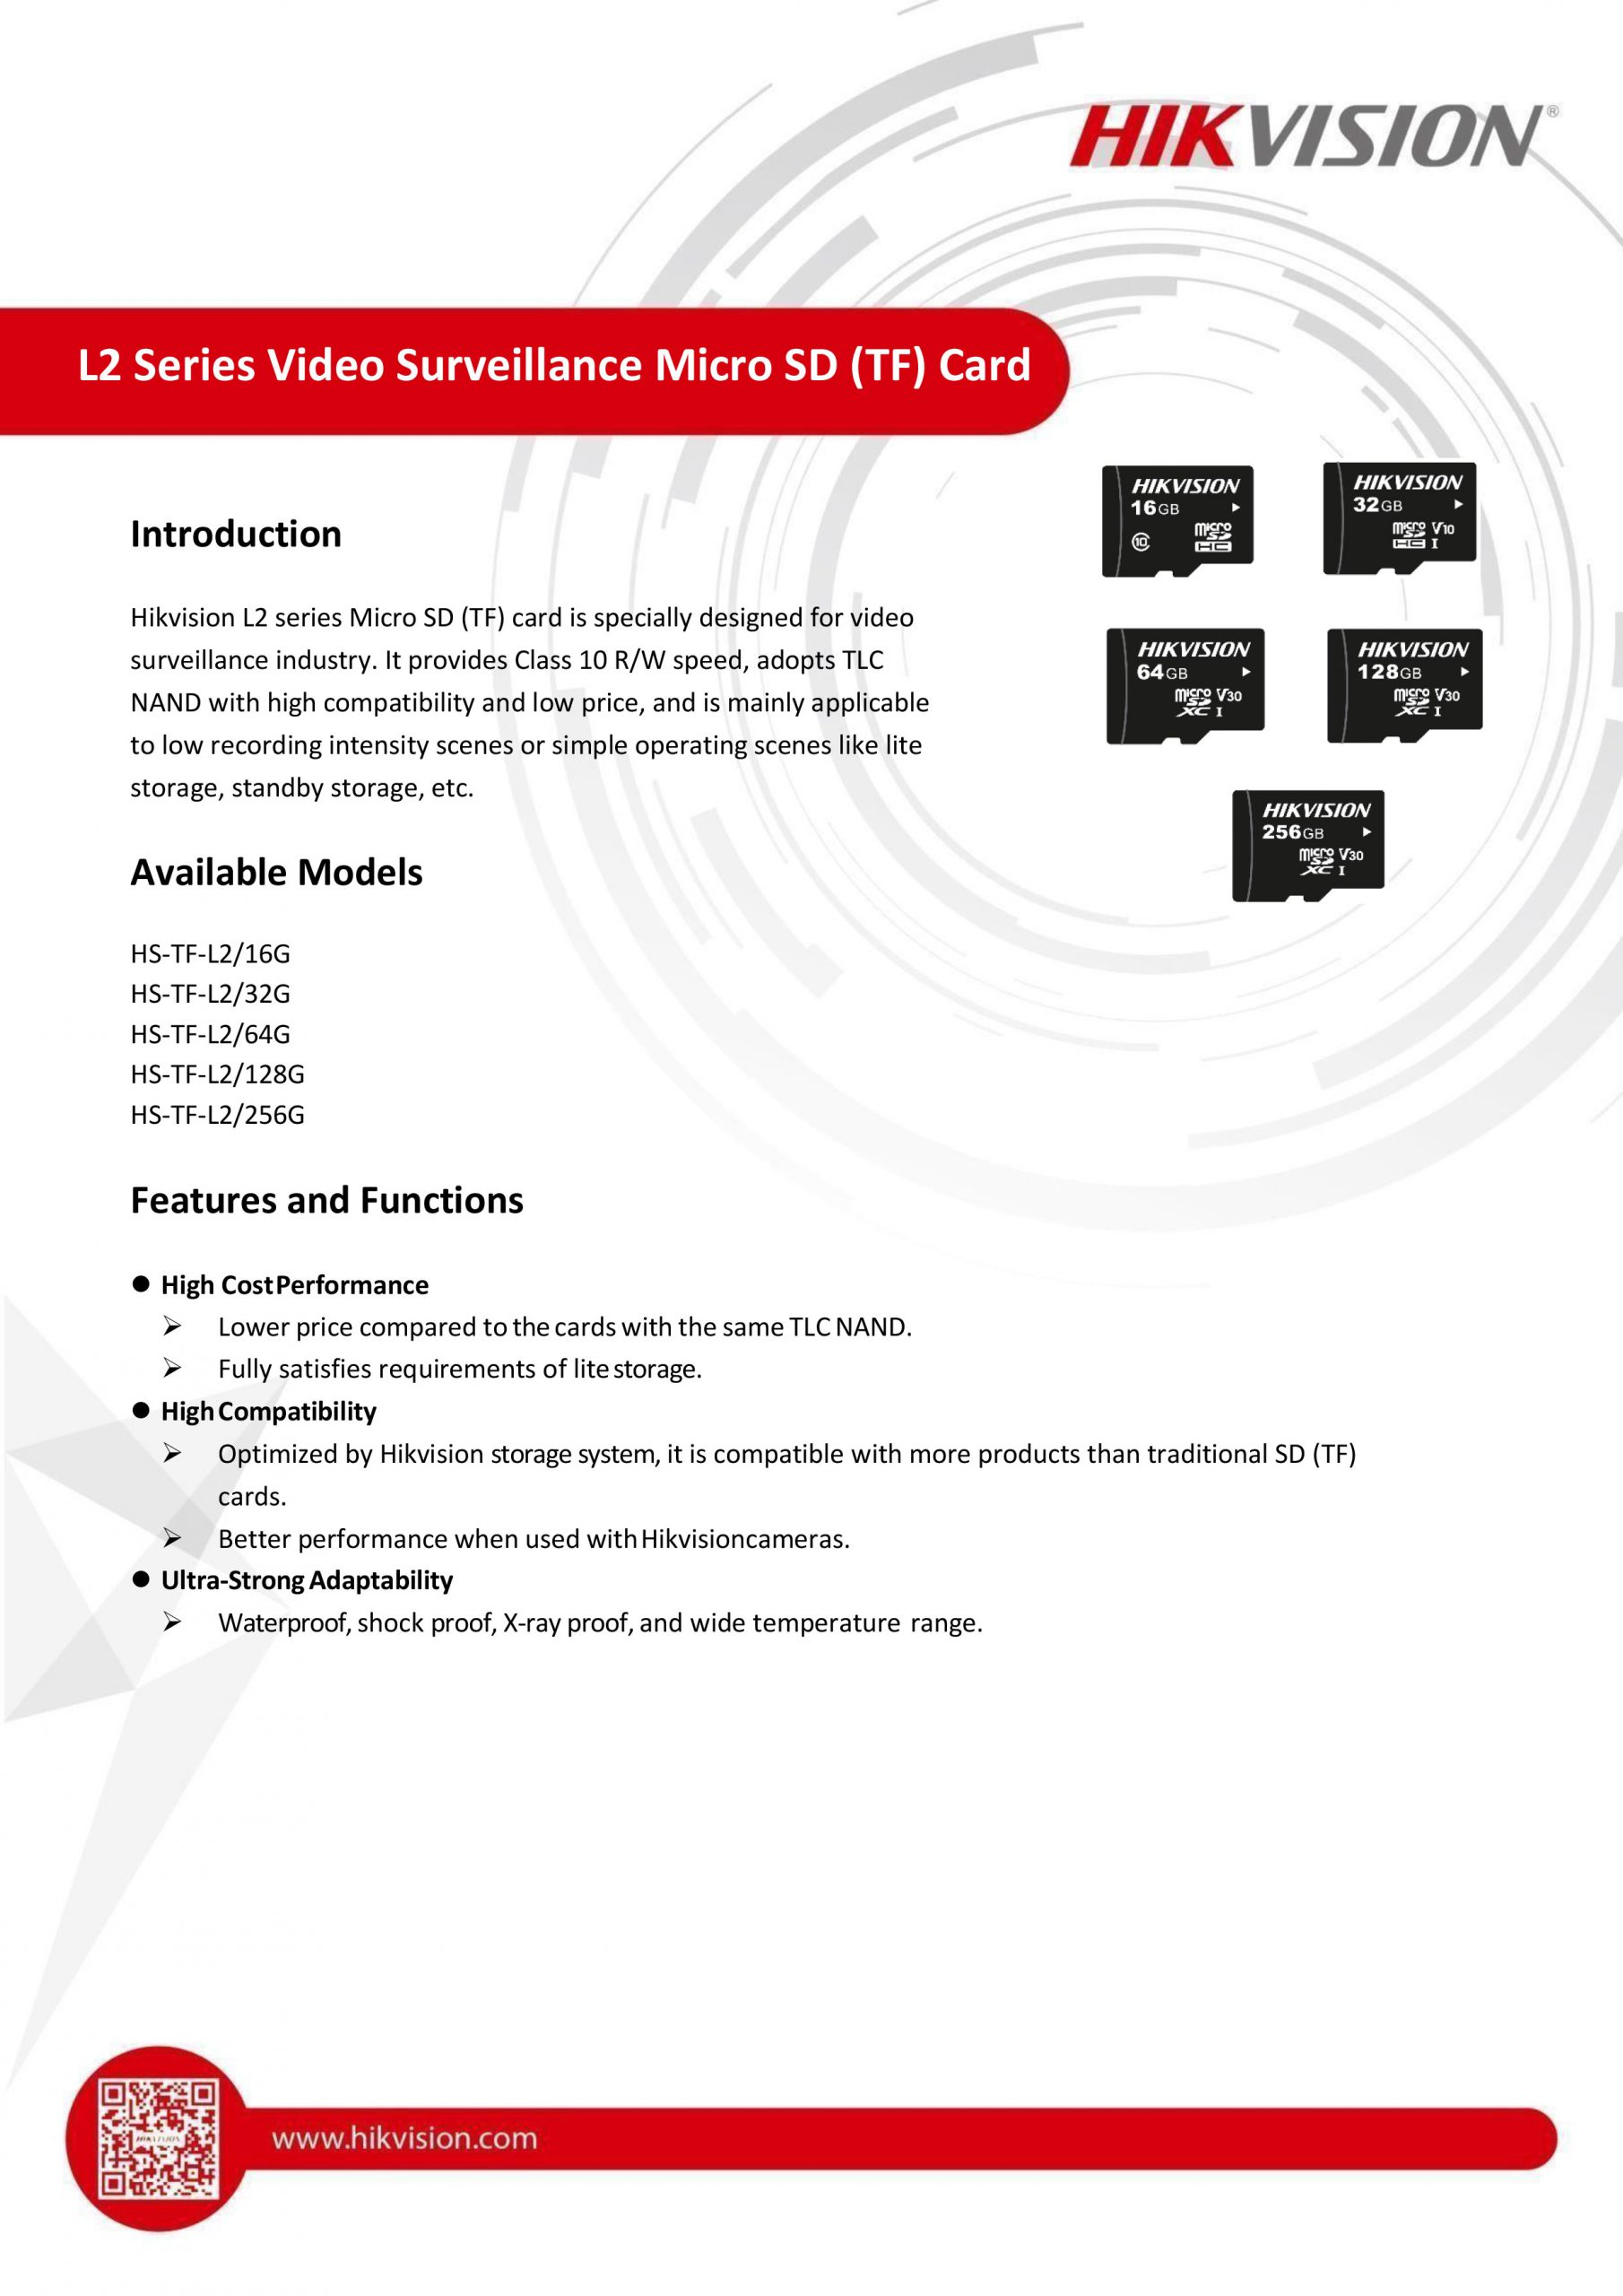 Hikvision L2 series Micro SD (TF) card